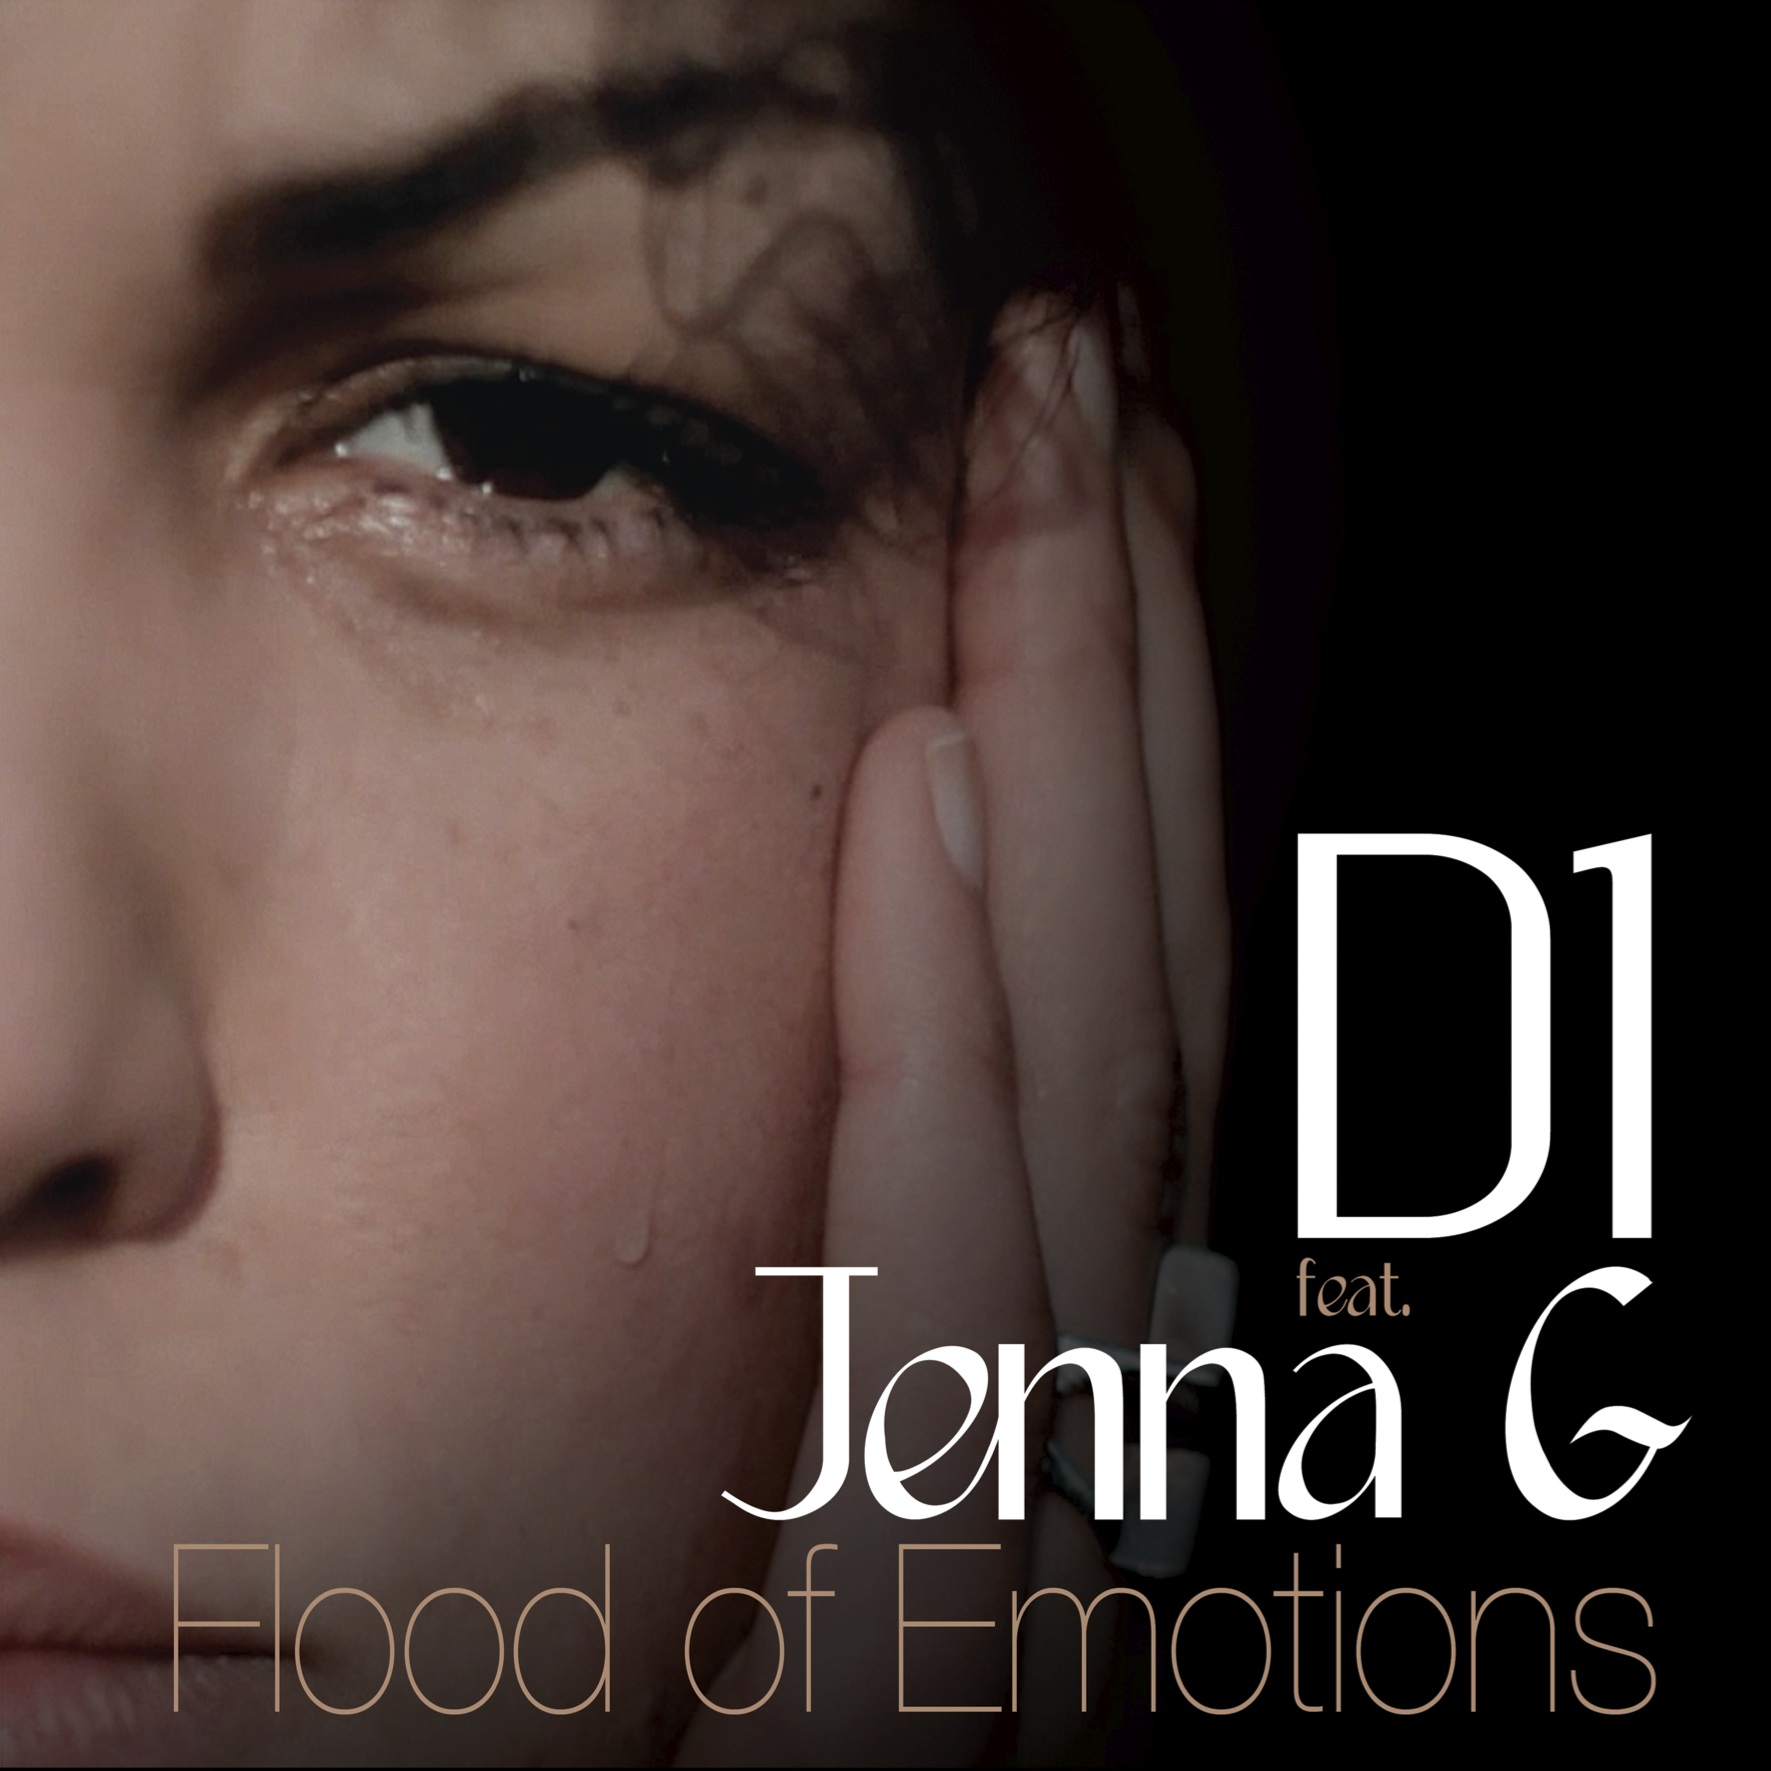 DP048: FLOOD OF EMOTIONS / BLEEPS TO BROADWAY